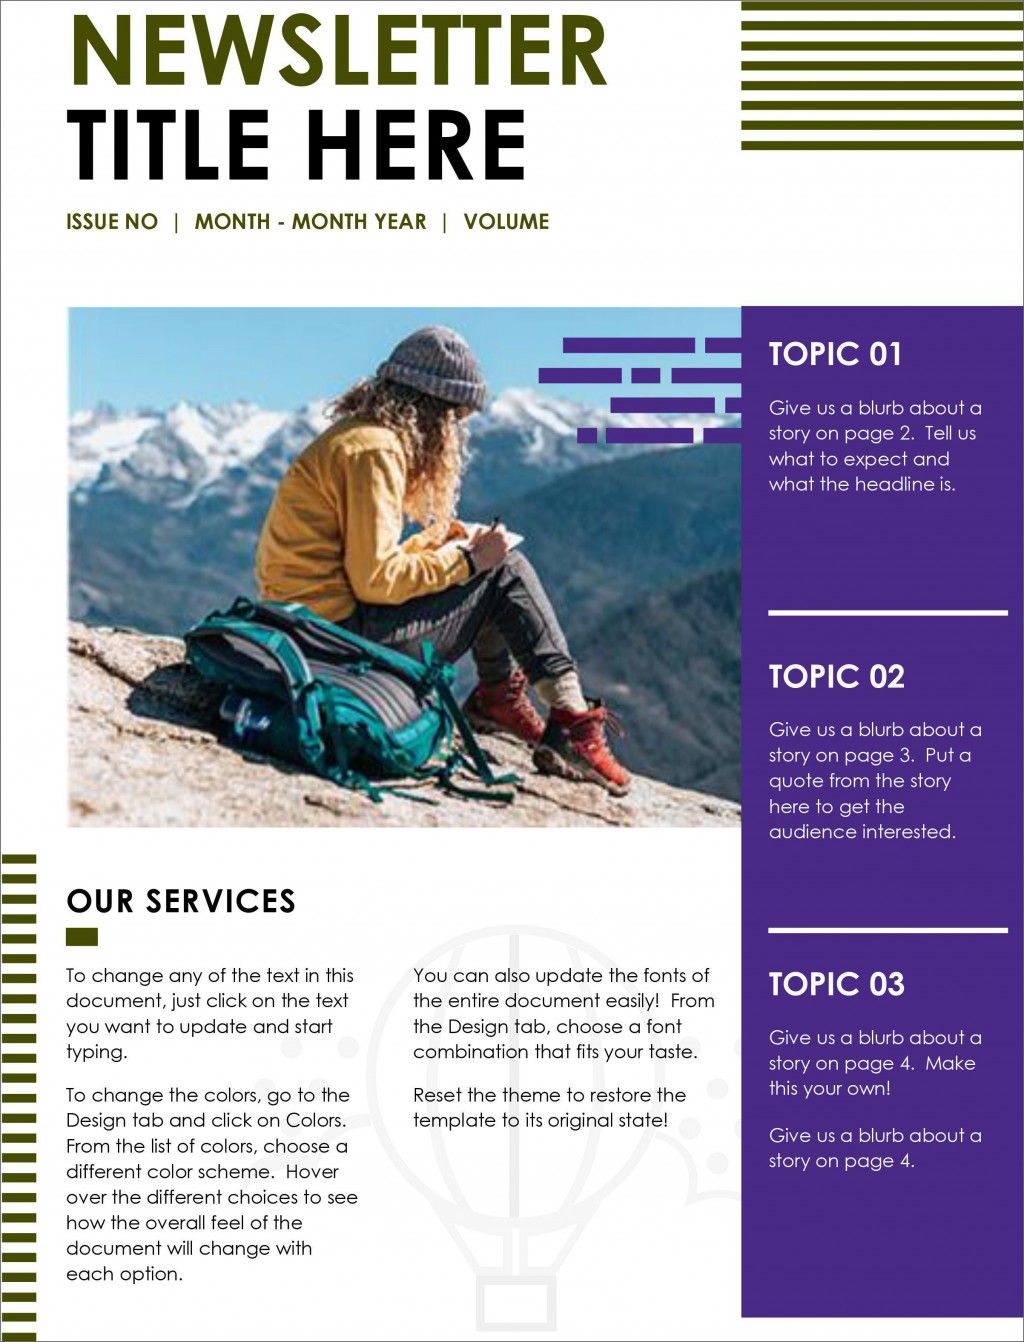 007 Staggering Free Newsletter Template For Word 2010 Idea Large